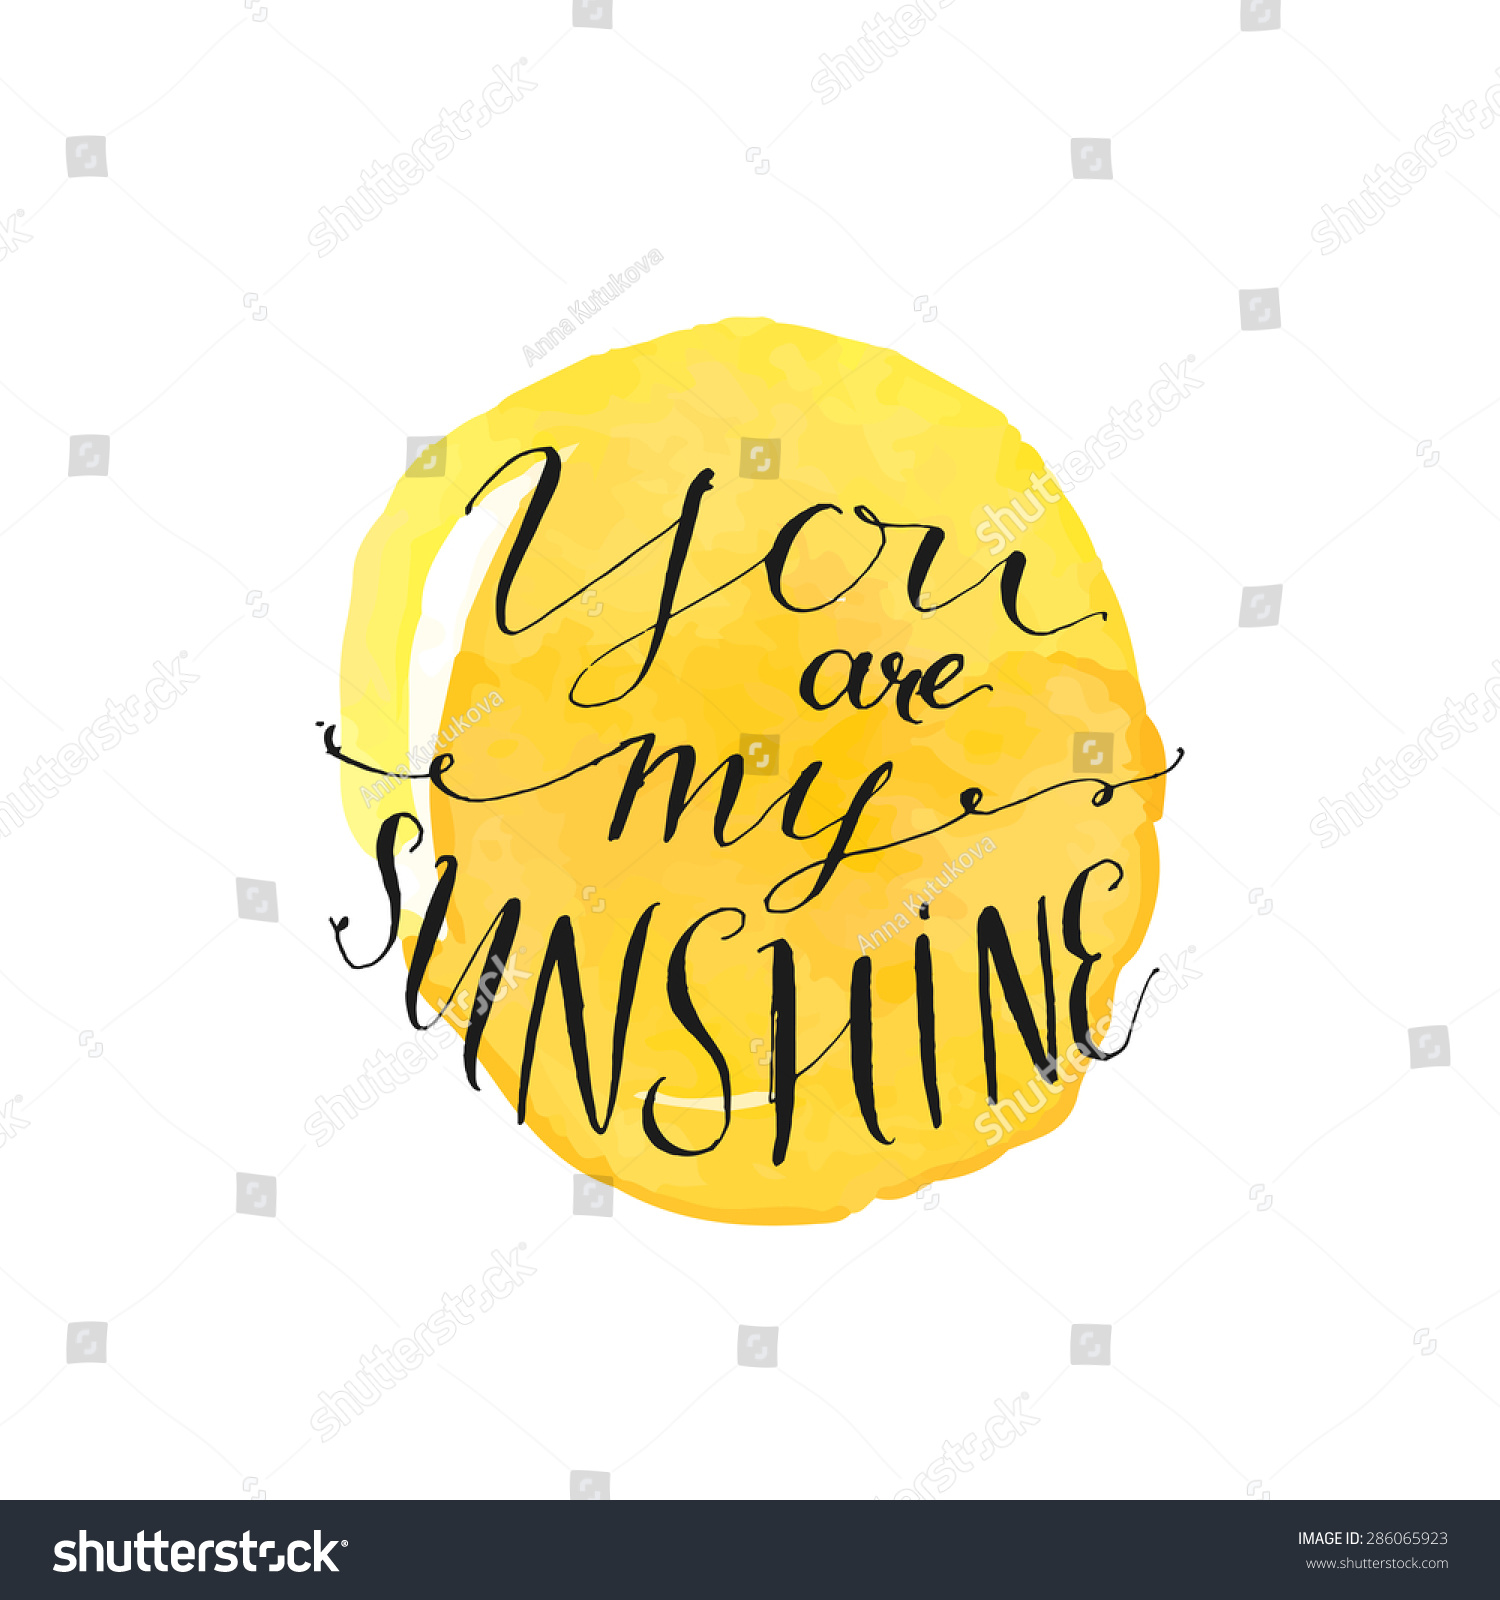 Yellow watercolor circle modern calligraphy quote stock